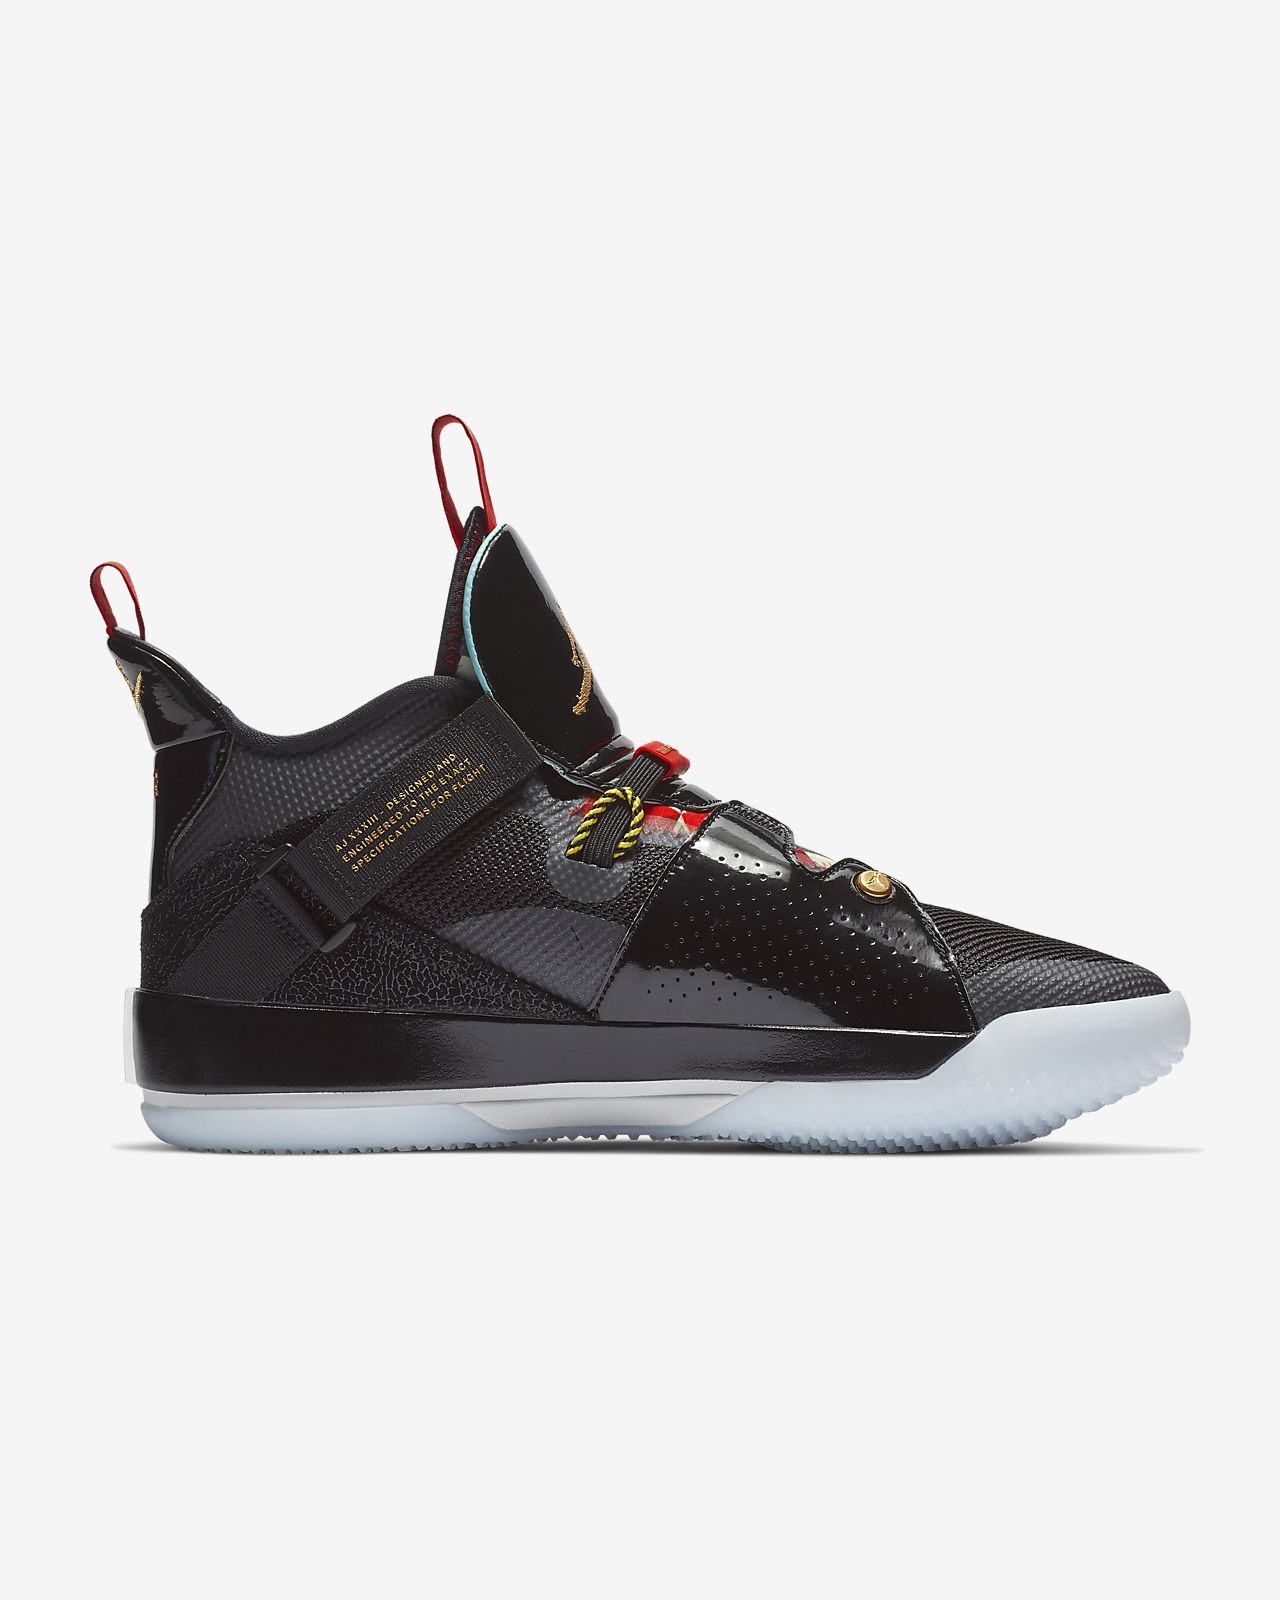 8e2ed8664ef Low Resolution Air Jordan XXXIII Men s Basketball Shoe Air Jordan XXXIII Men s  Basketball Shoe